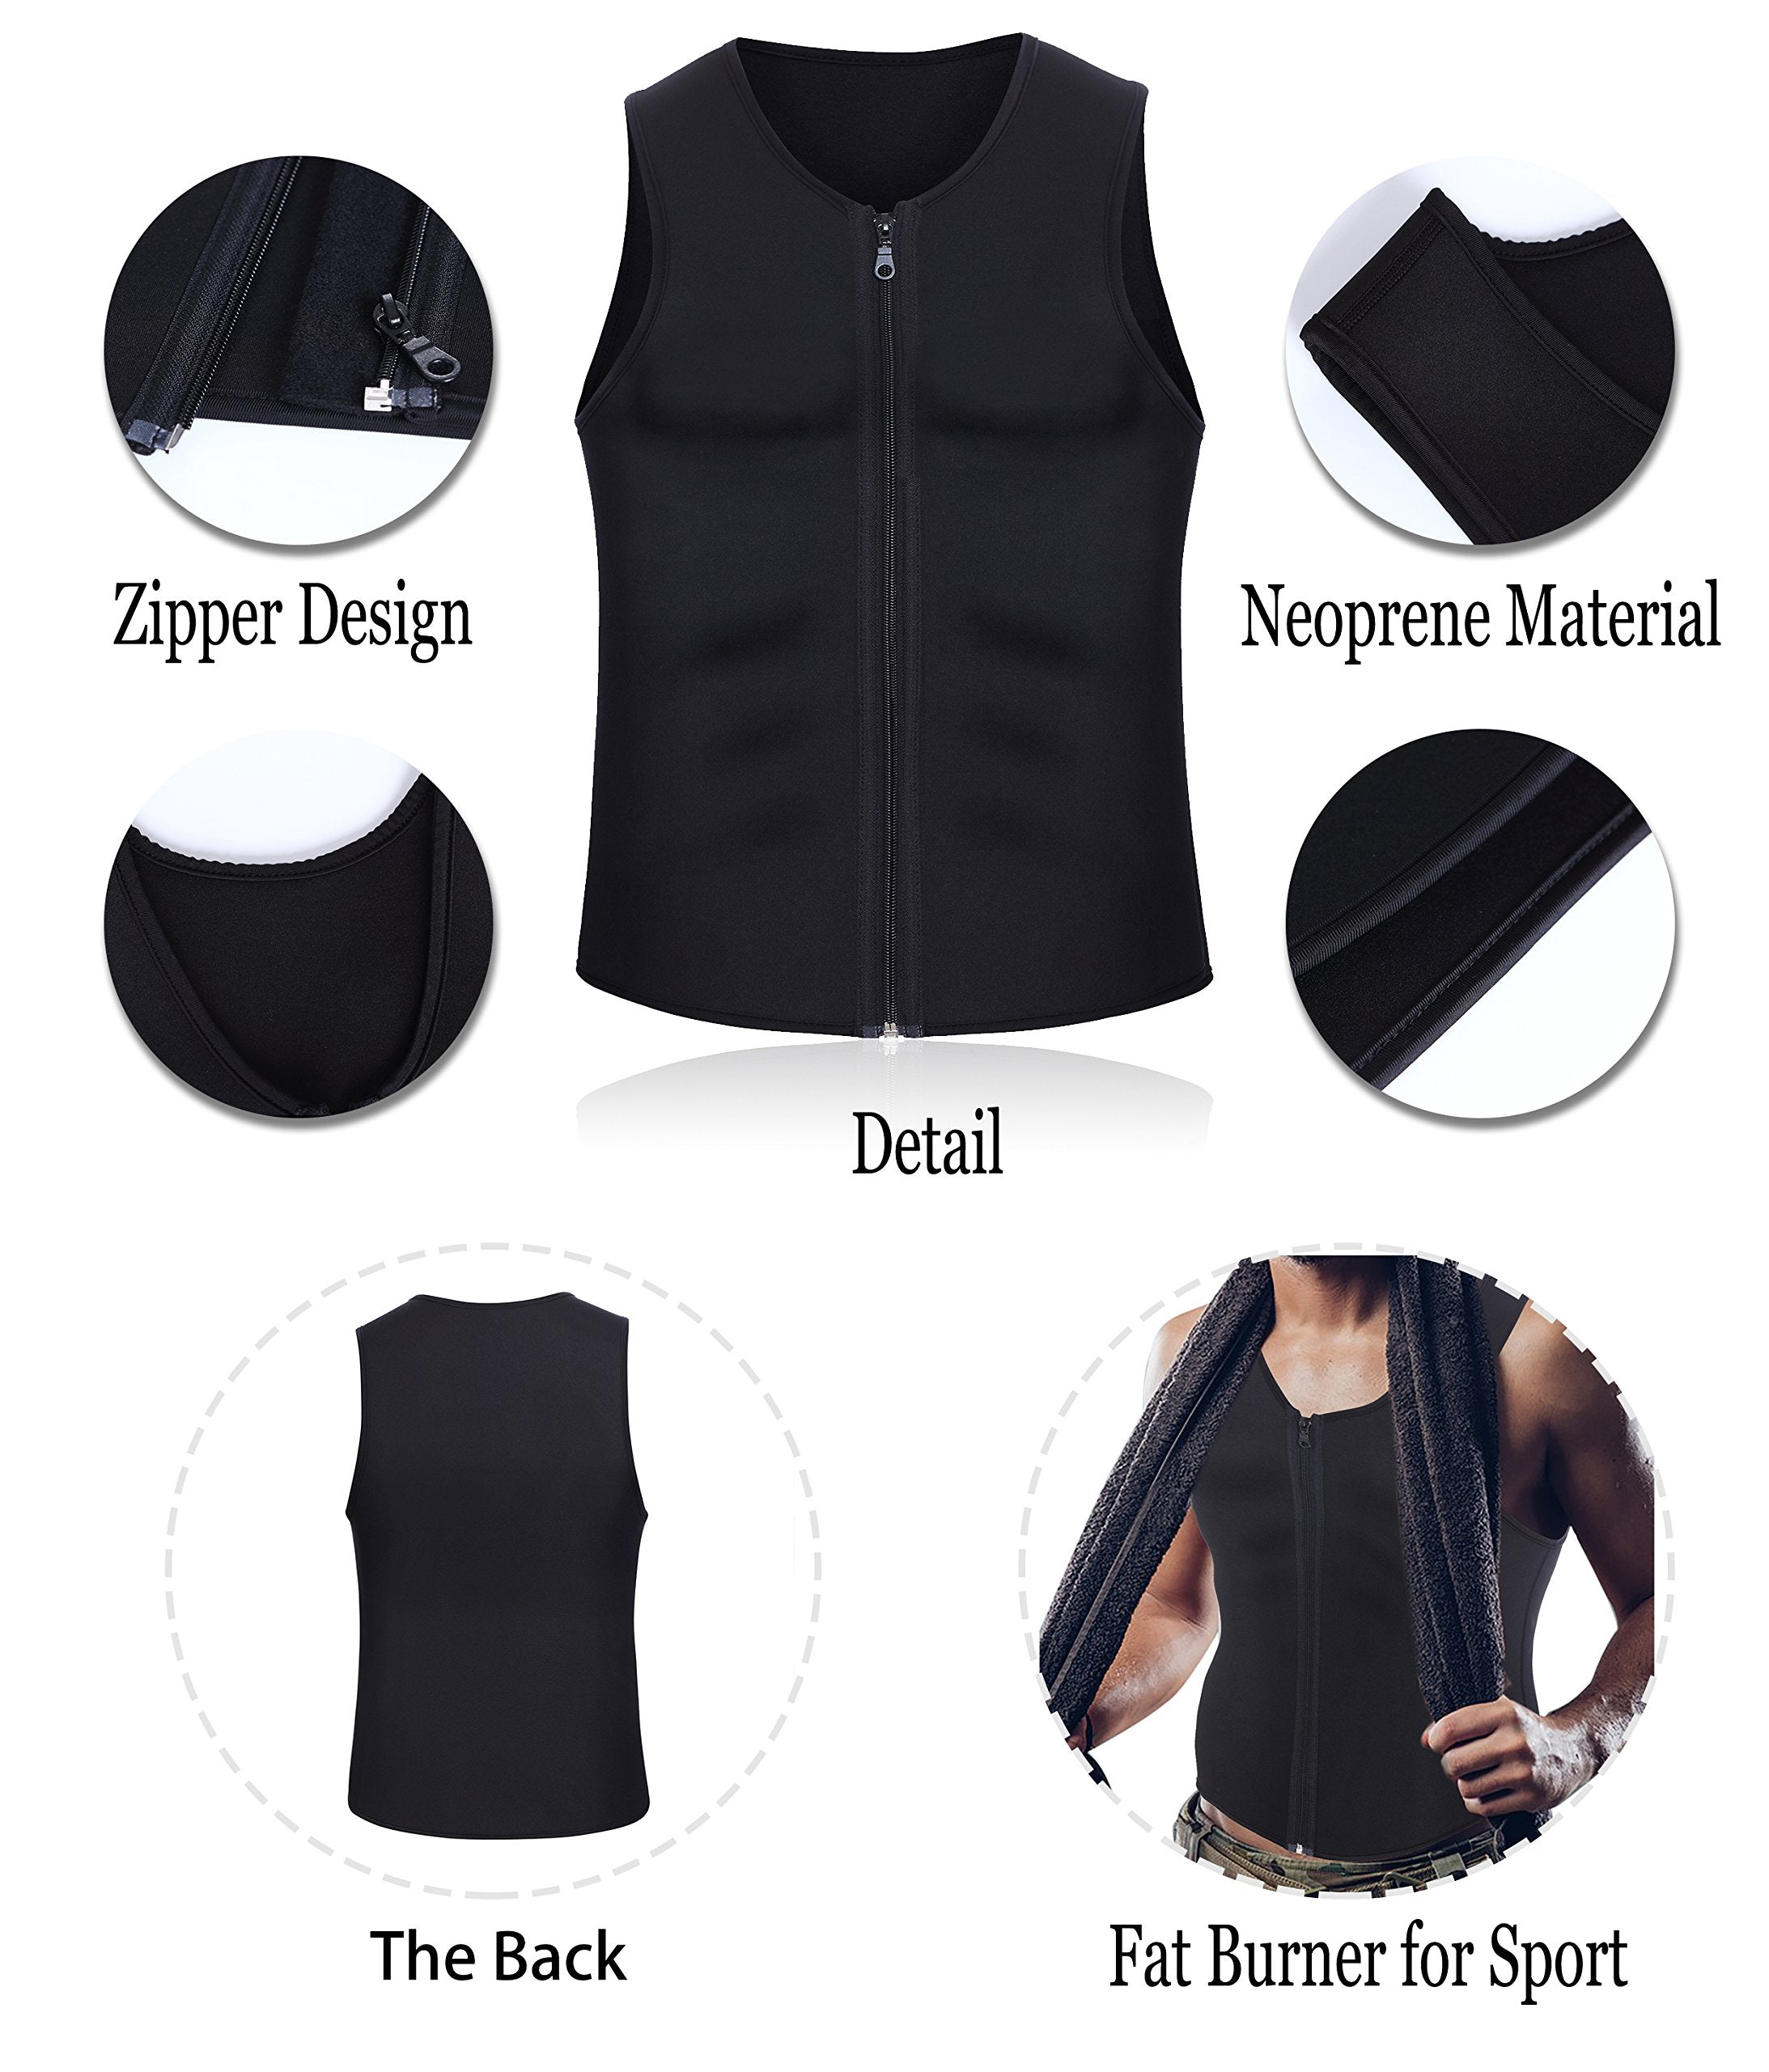 Men Waist Trainer Vest for Weightloss Hot Neoprene Corset Body Shaper Zipper Sauna Tank Top Workout Shirt (L, Black Neoprene Slimming Vest)